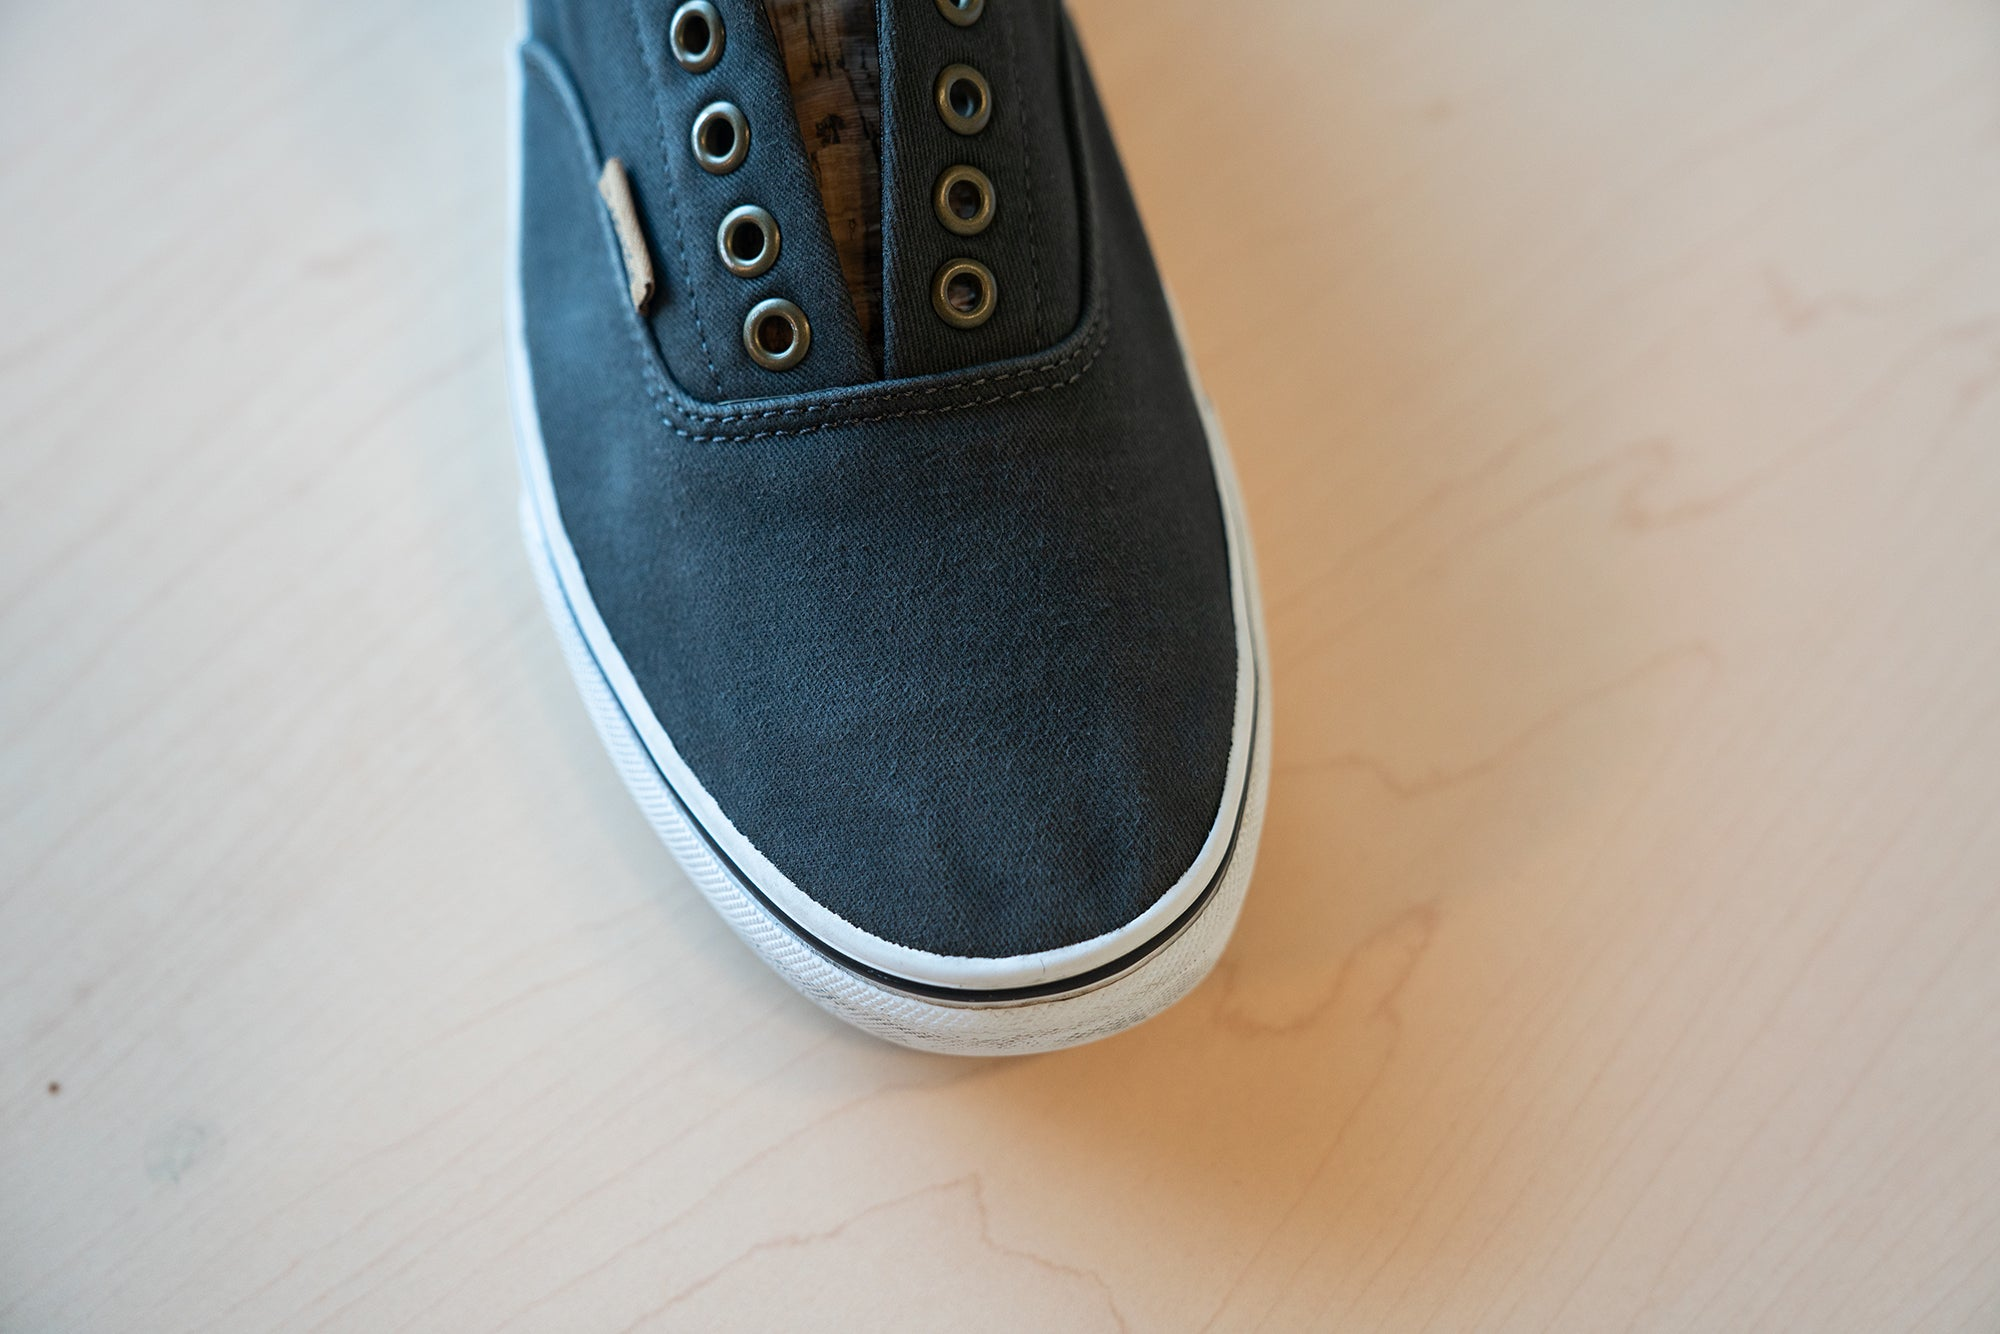 How to Removed Chocolate Stains from Canvas Vans